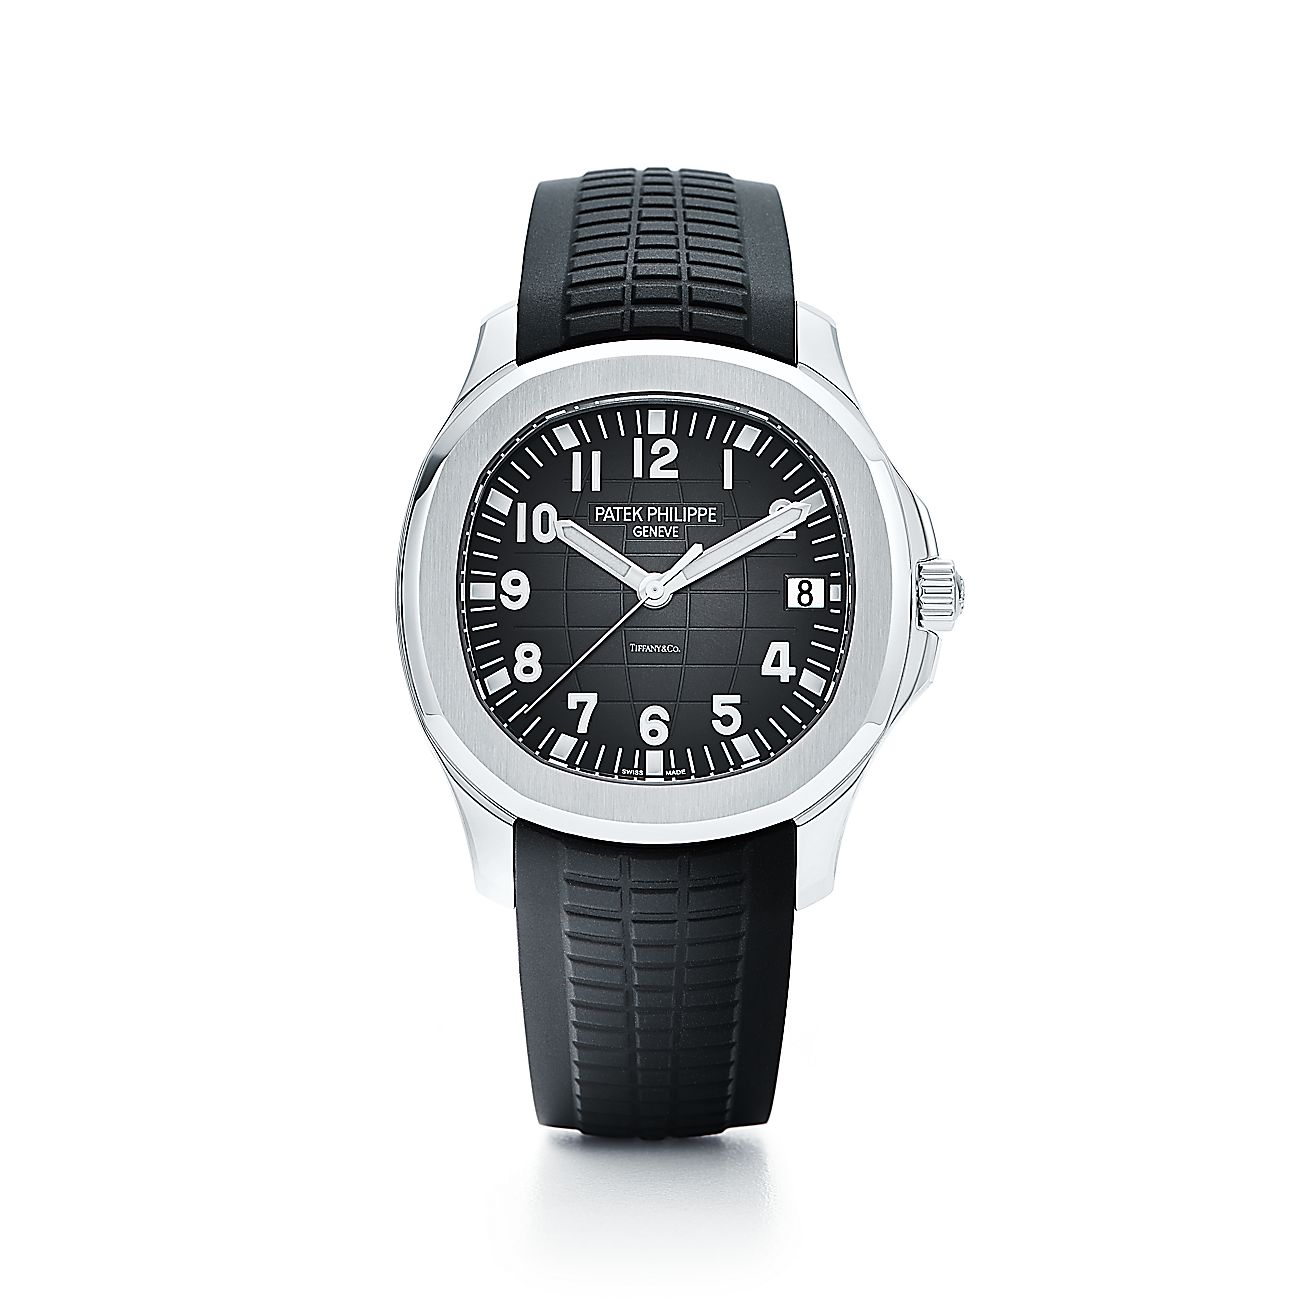 http://media.tiffany.com/is/image/Tiffany/EcomItemL2/patek-philippeaquanaut-mens-watch-22936972_940185_ED.jpg?op_usm=2.5,1,6&defaultImage=NoImageAvailable&&